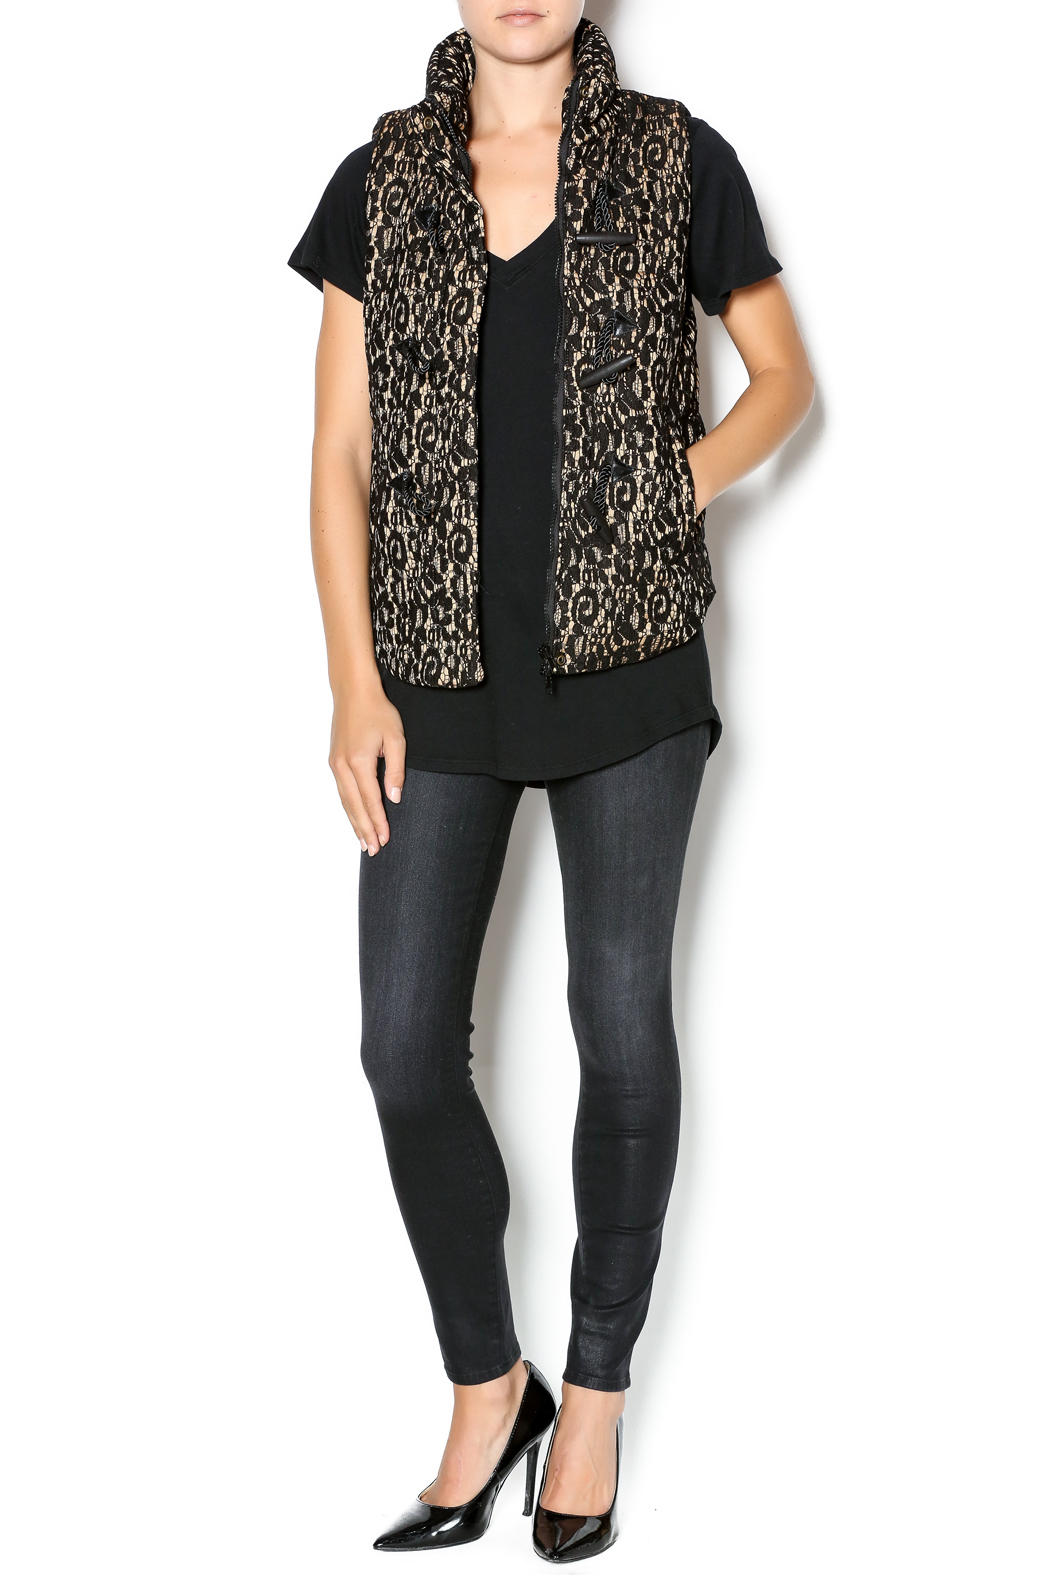 C. Luce Lace Puffy Vest - Front Full Image